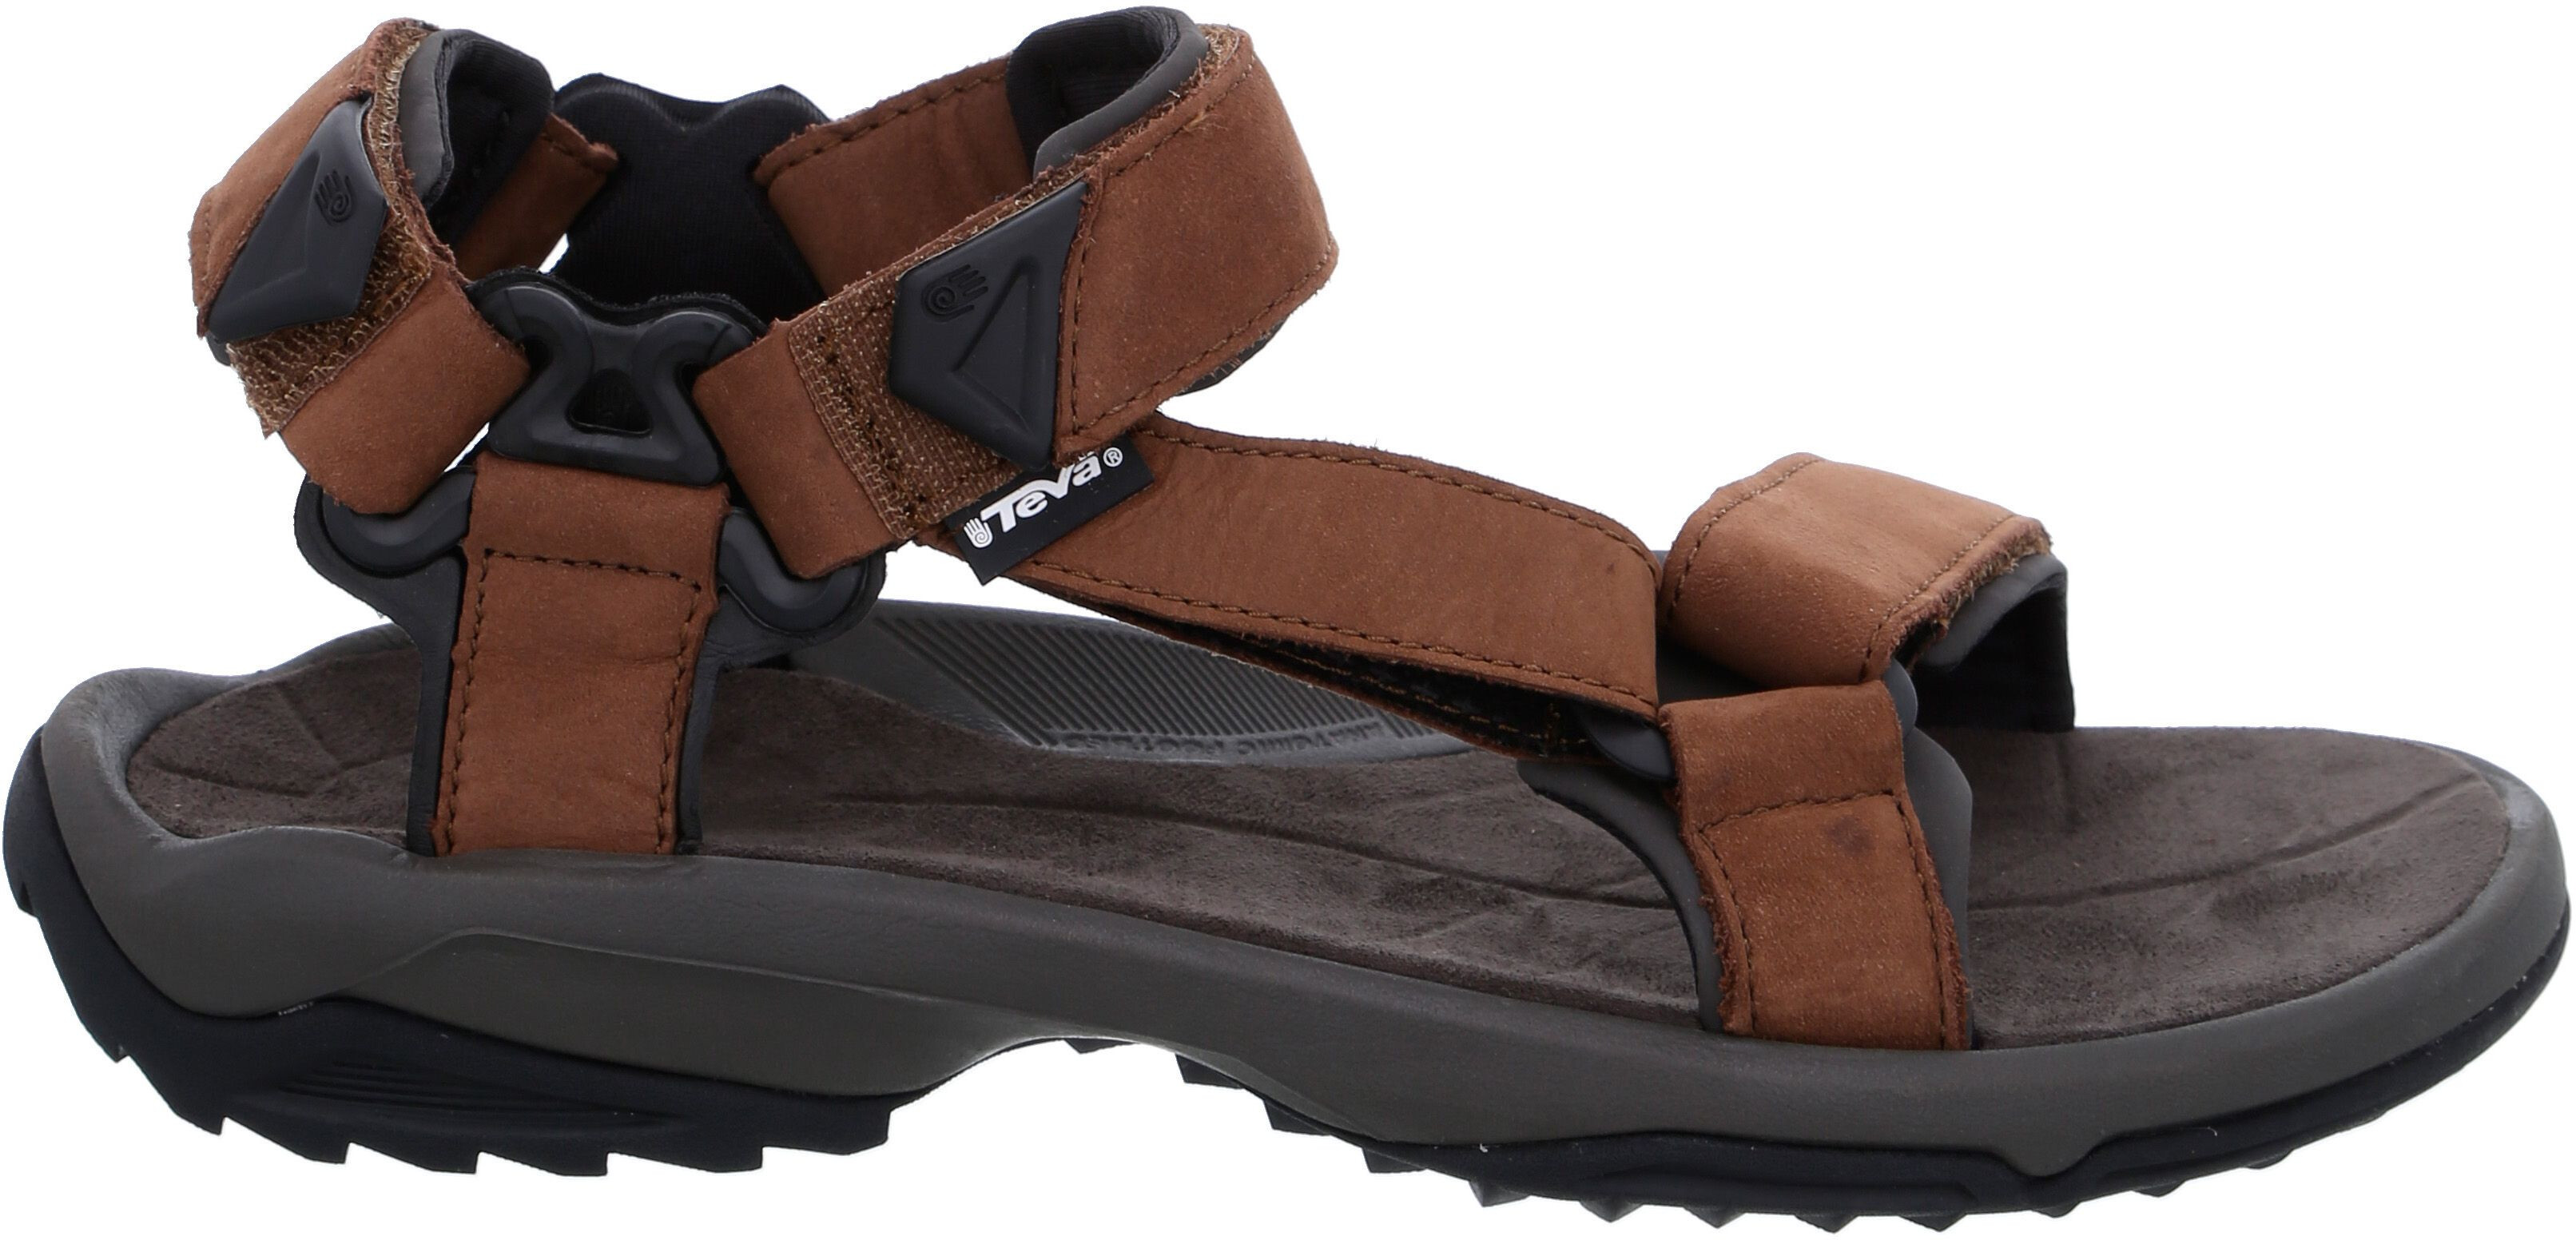 0d34fde803c0b3 Teva Terra FI Lite Leather Sandals Men brown at Addnature.co.uk